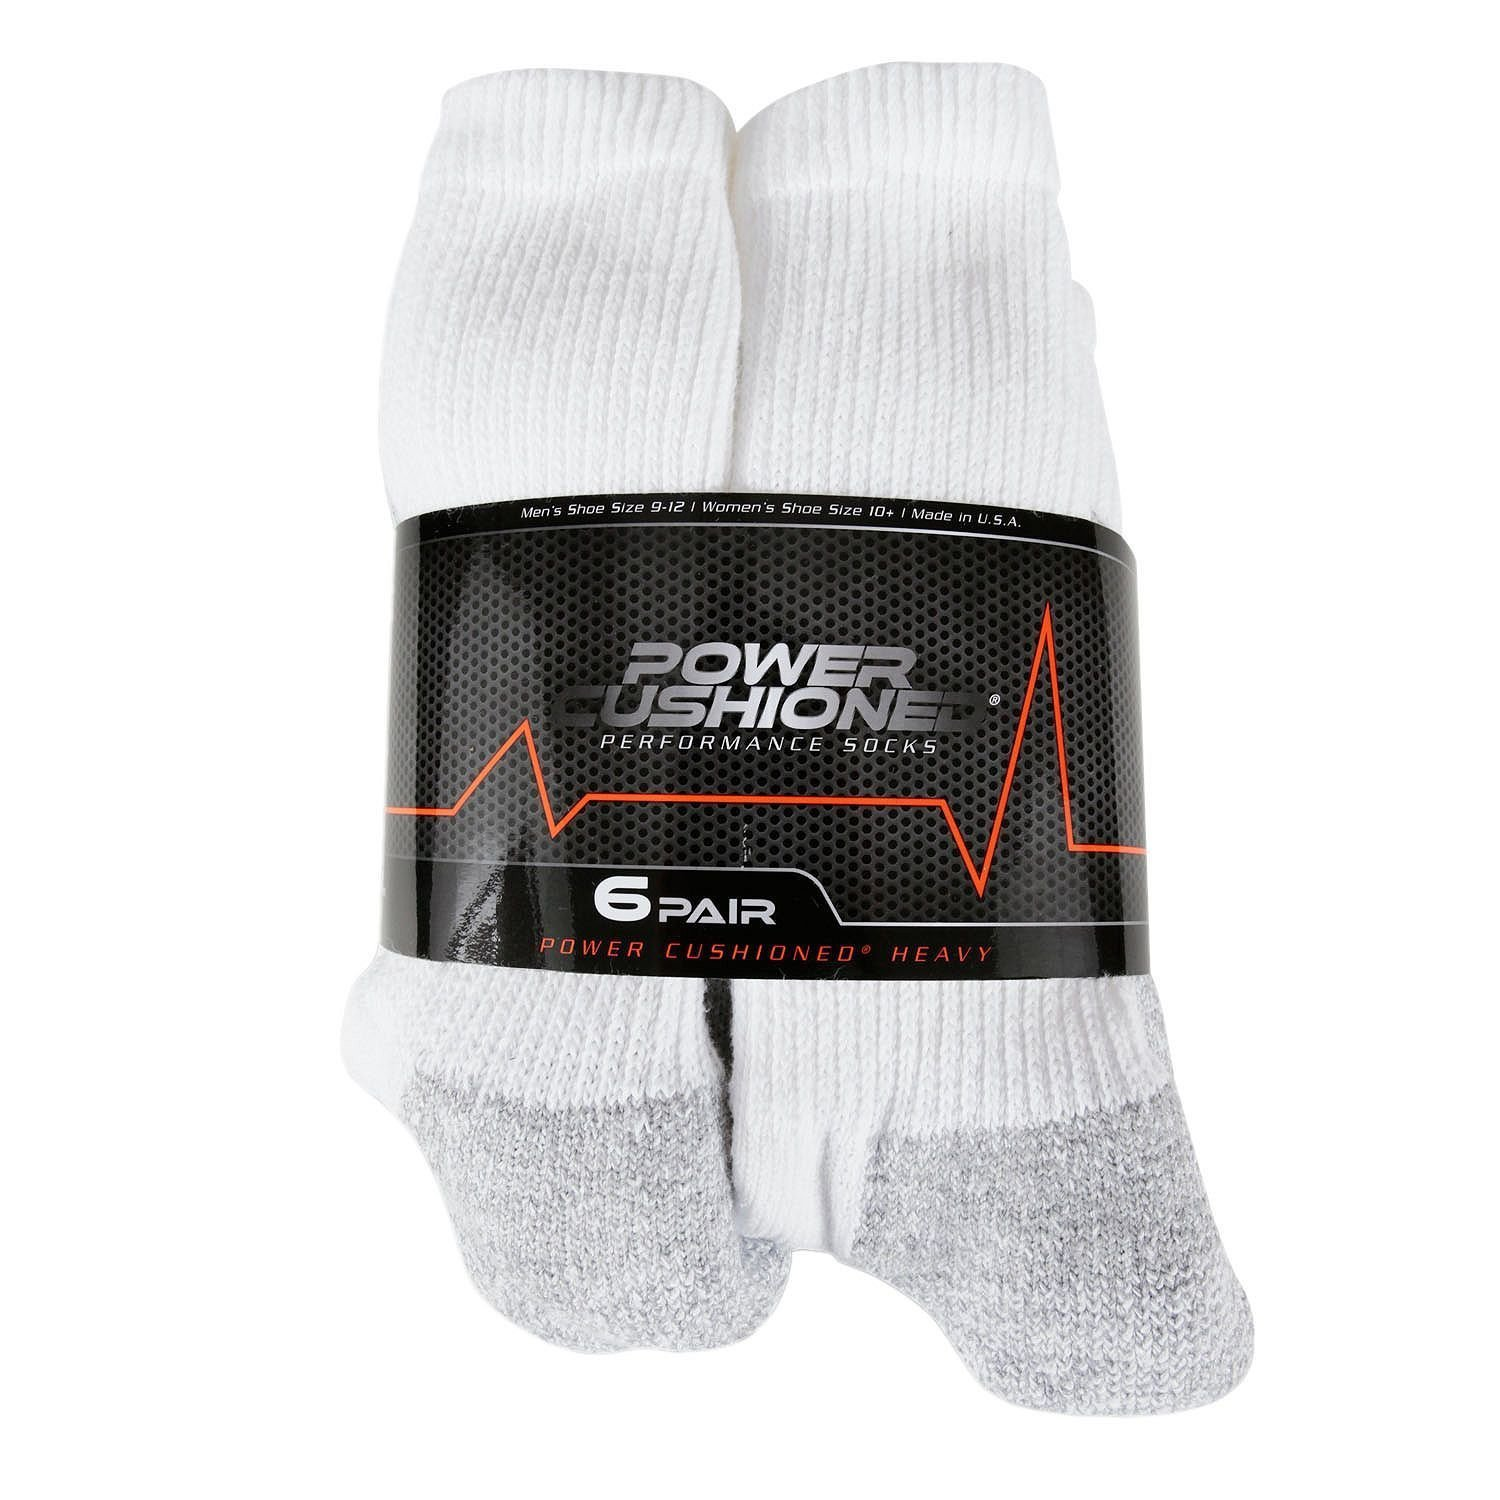 the best attitude 337f4 ca3f5 Power Cushioned Performance Crew Large 6 Pair Pack (White)